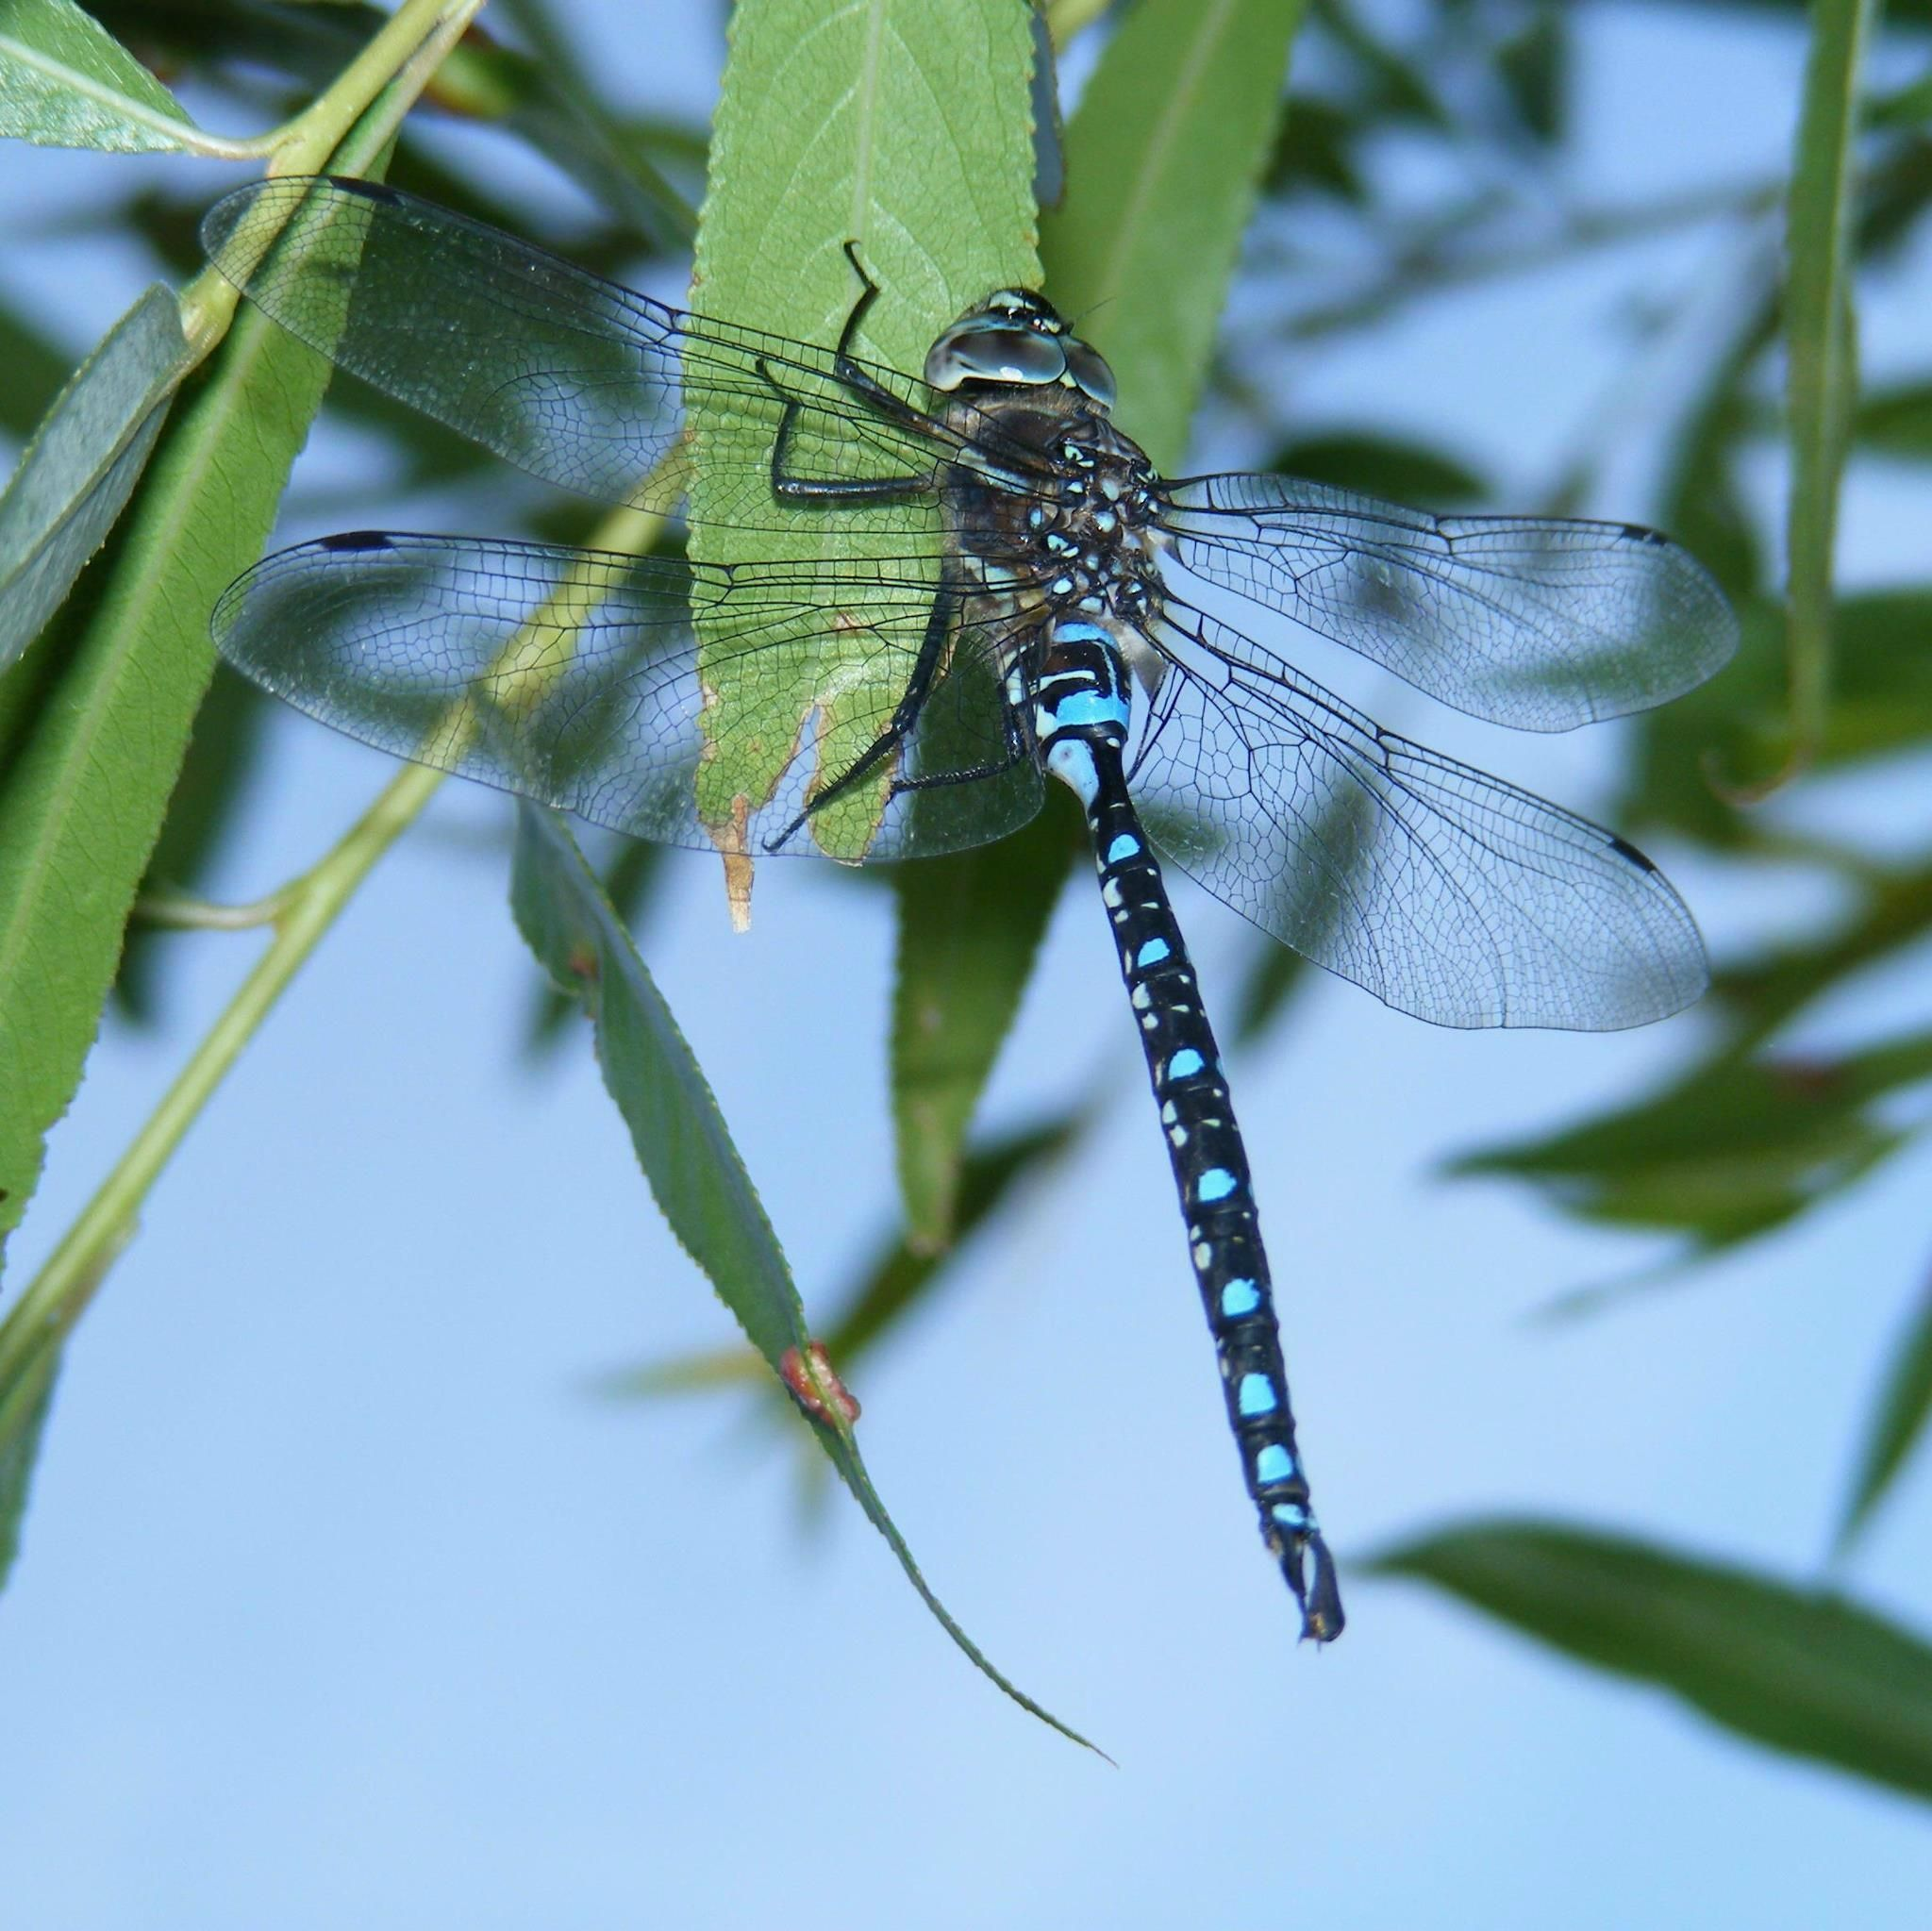 Awesome blue dragonfly on the willow tree